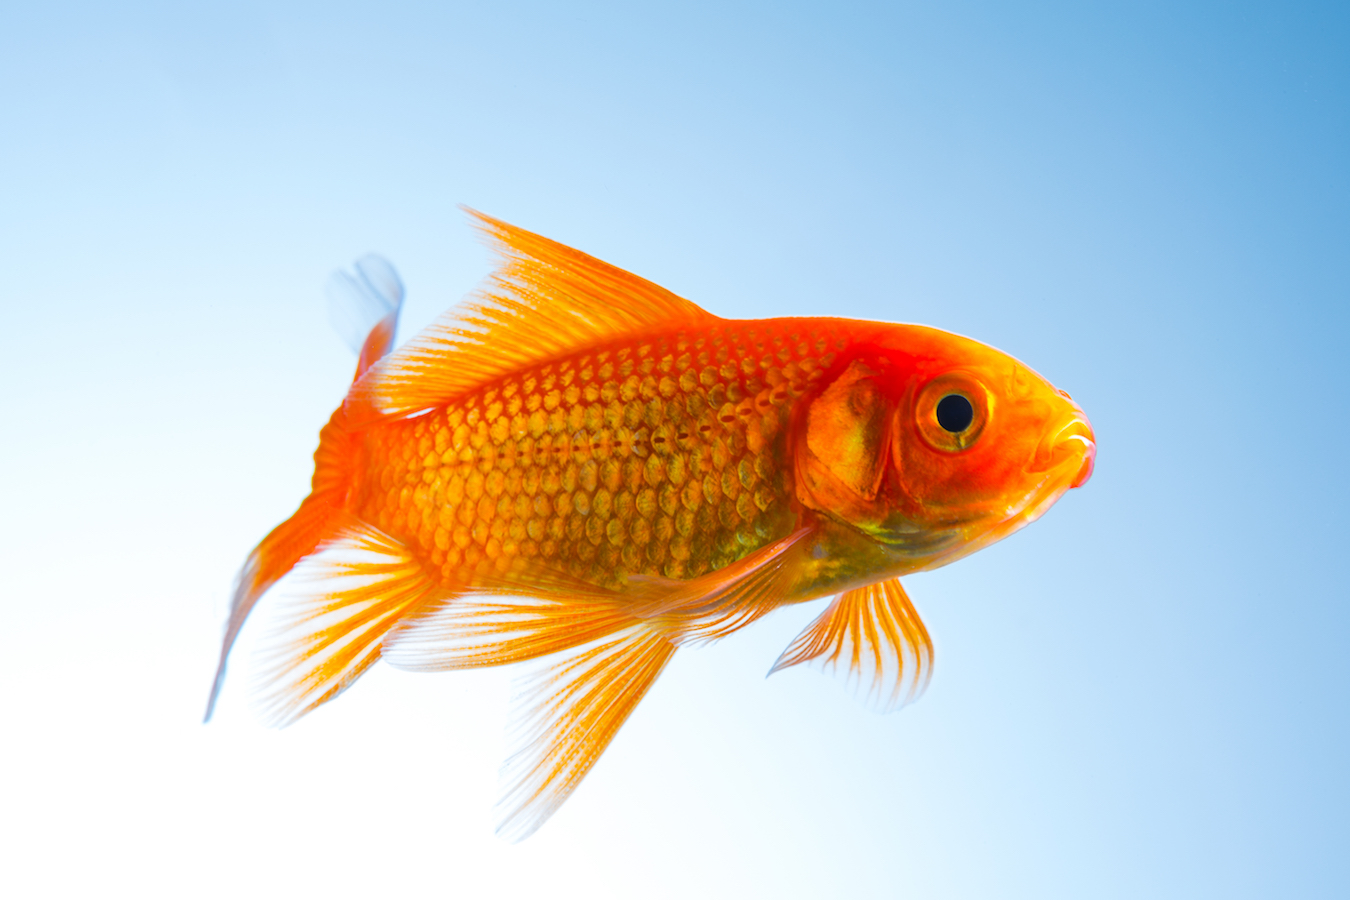 A goldfish underwater on blue background. Taken in Studio with a 5D mark III.